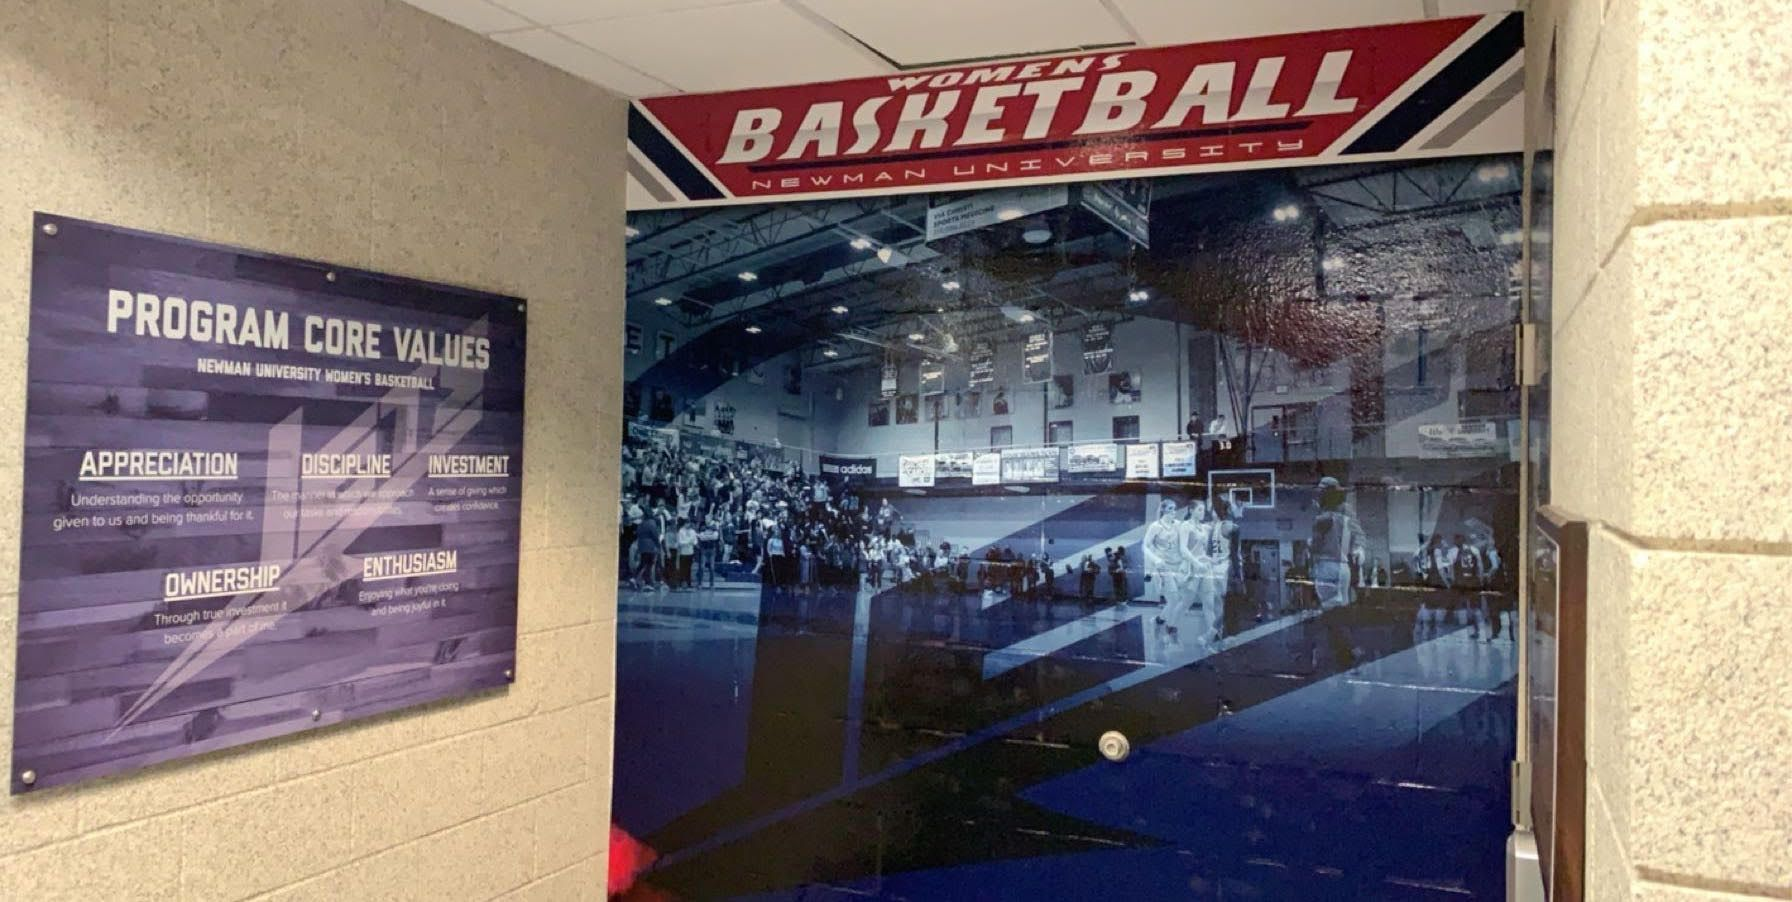 Cle-ology: Newman athletes appreciate facility improvements